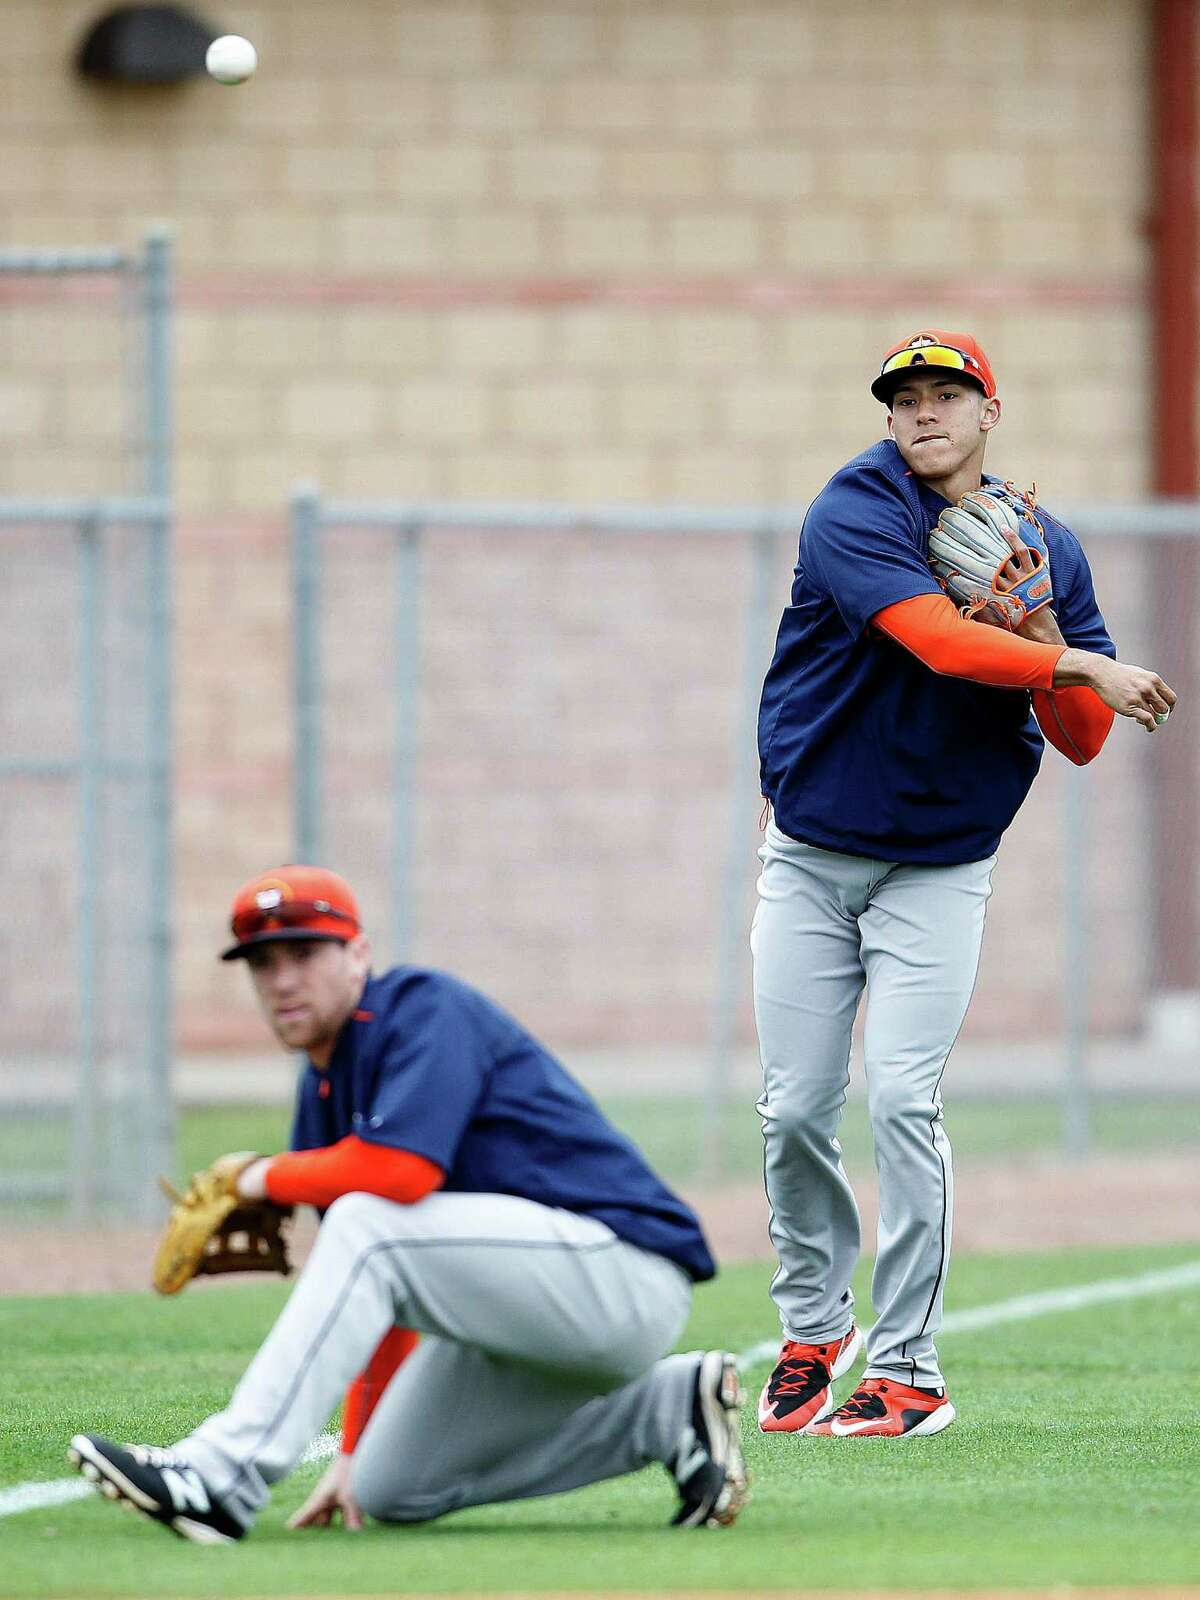 Houston Astros infielder Carlos Correa (76) throws over Houston Astros infielder Nolan Fontana (78) during Houston Astros spring training workouts at the Osceola County facility, Friday, Feb. 27, 2015, in Kissimmee.